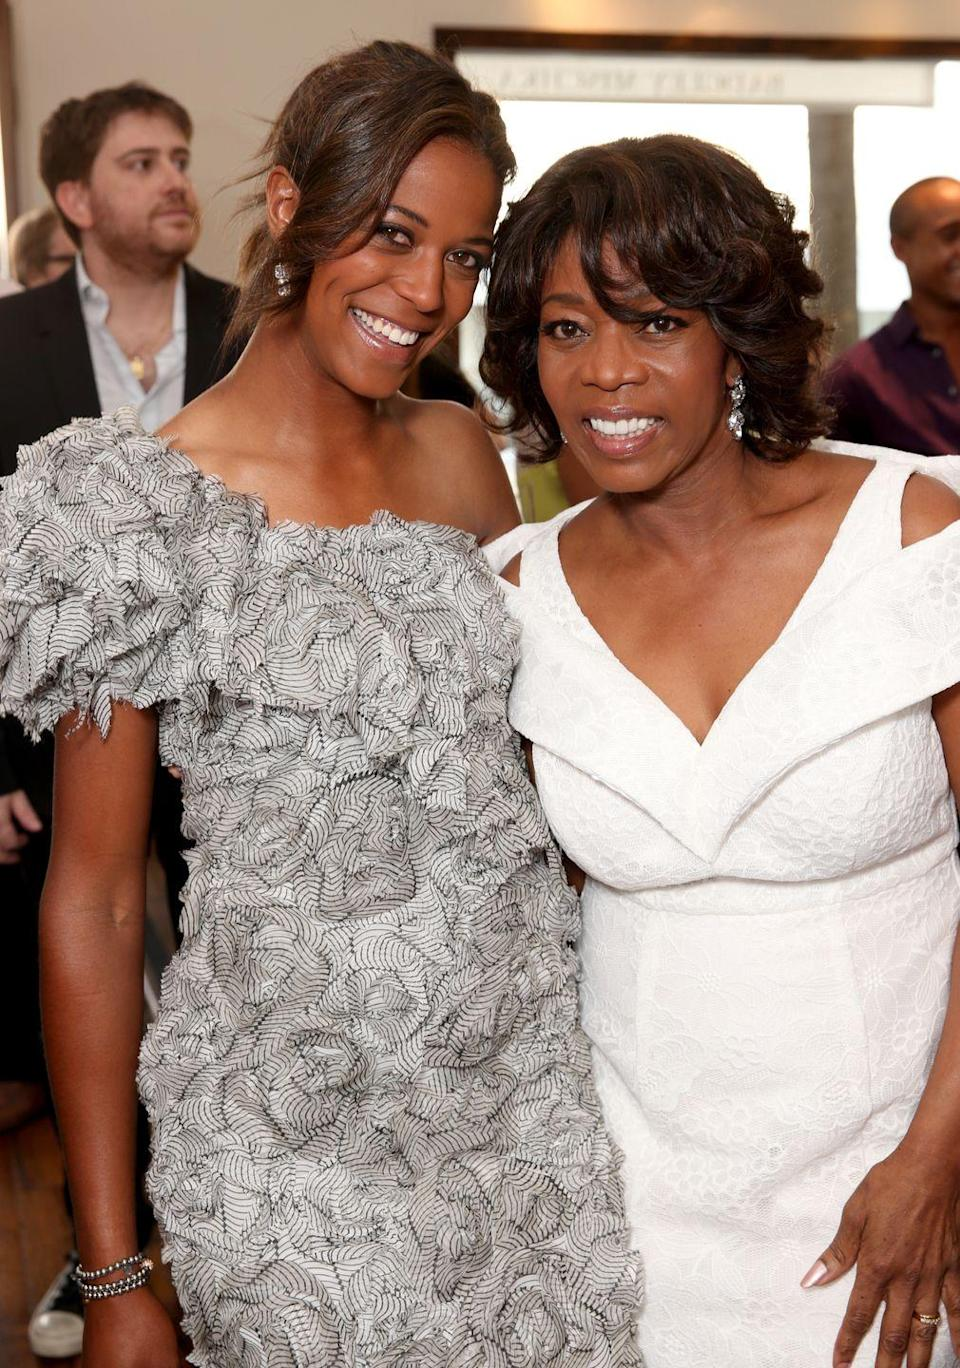 <p>Alfre Woodard's daughter Mavis Spencer left the prospect of Hollywood behind to pursue a career as a professional equestrian. But prior to that, she was Miss Golden Globe for the 2010 ceremony. </p>